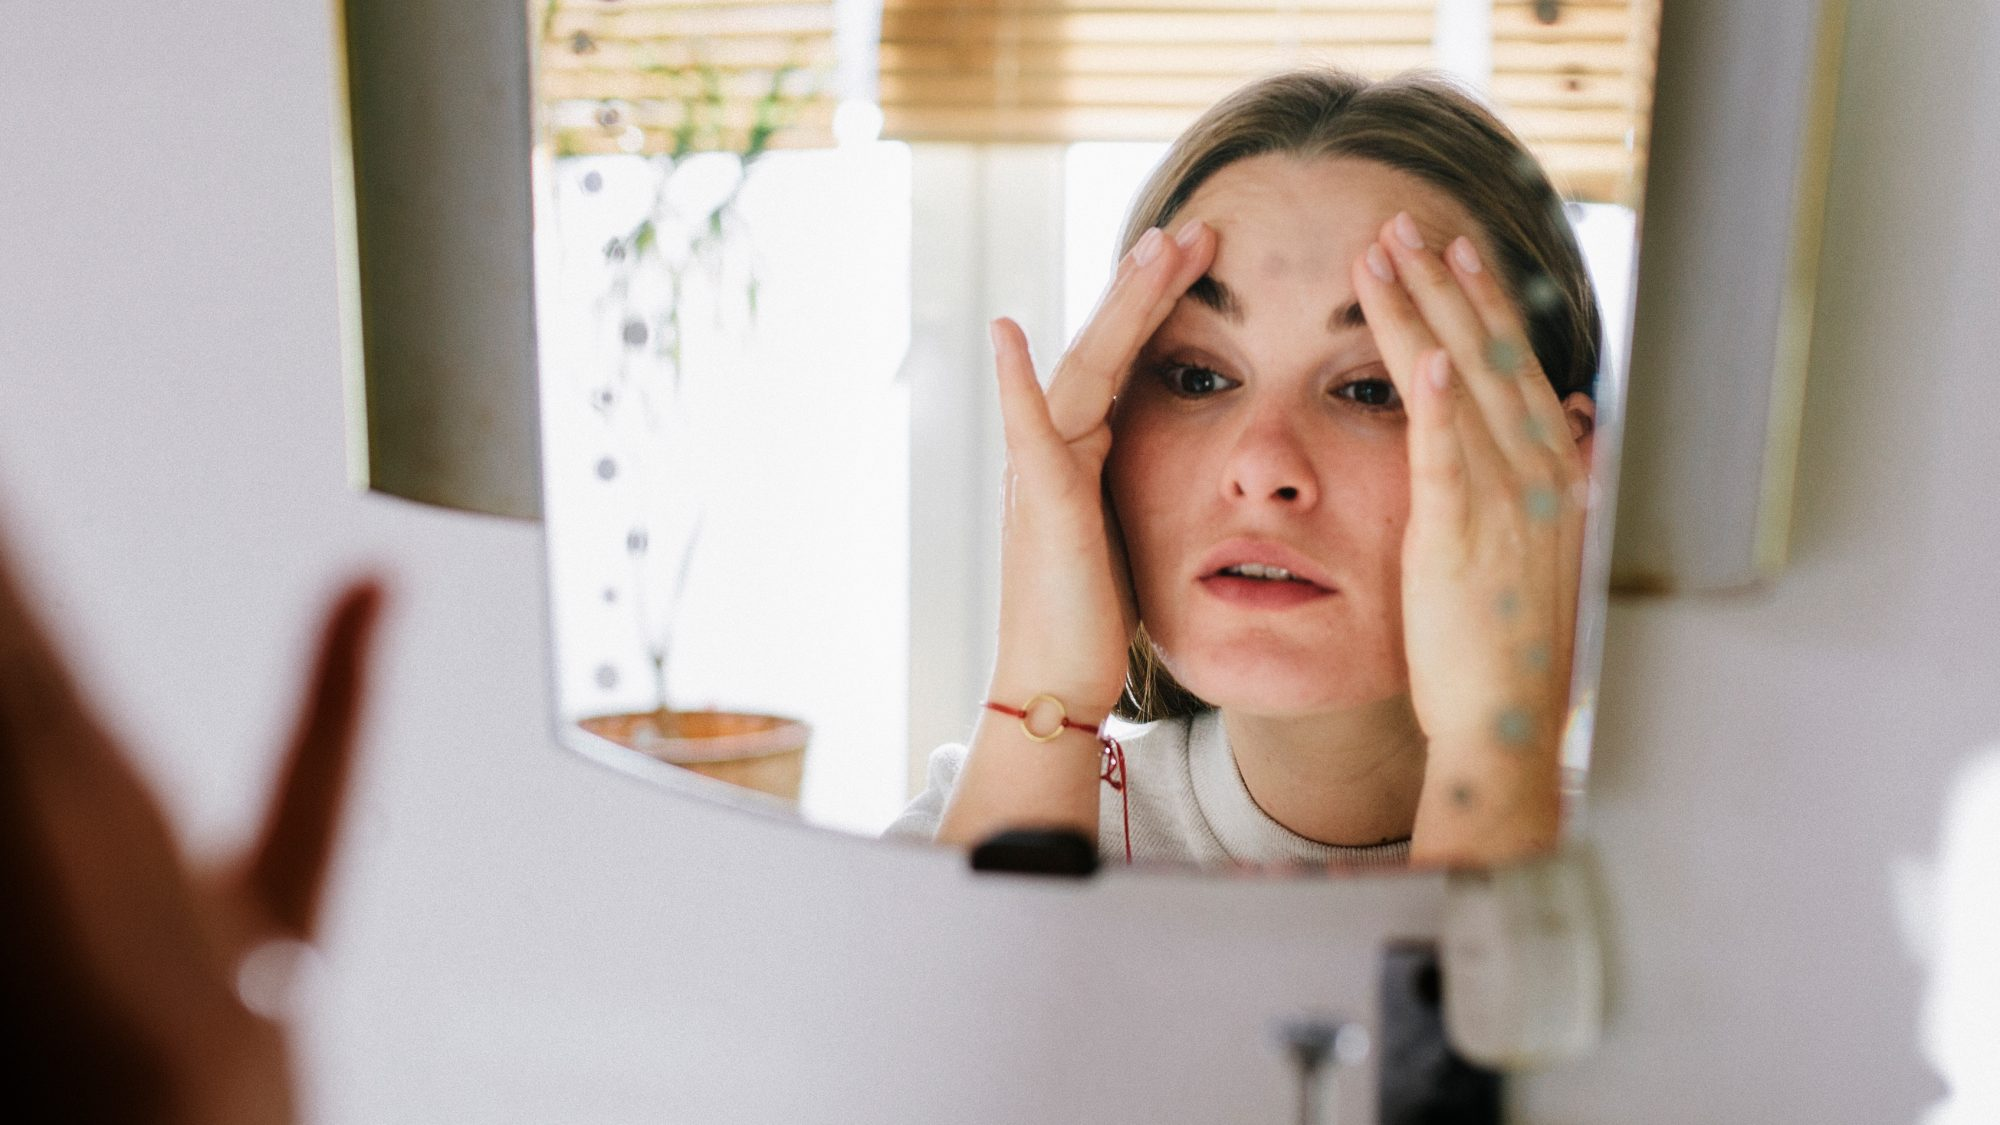 woman with facial eczema looking in mirror